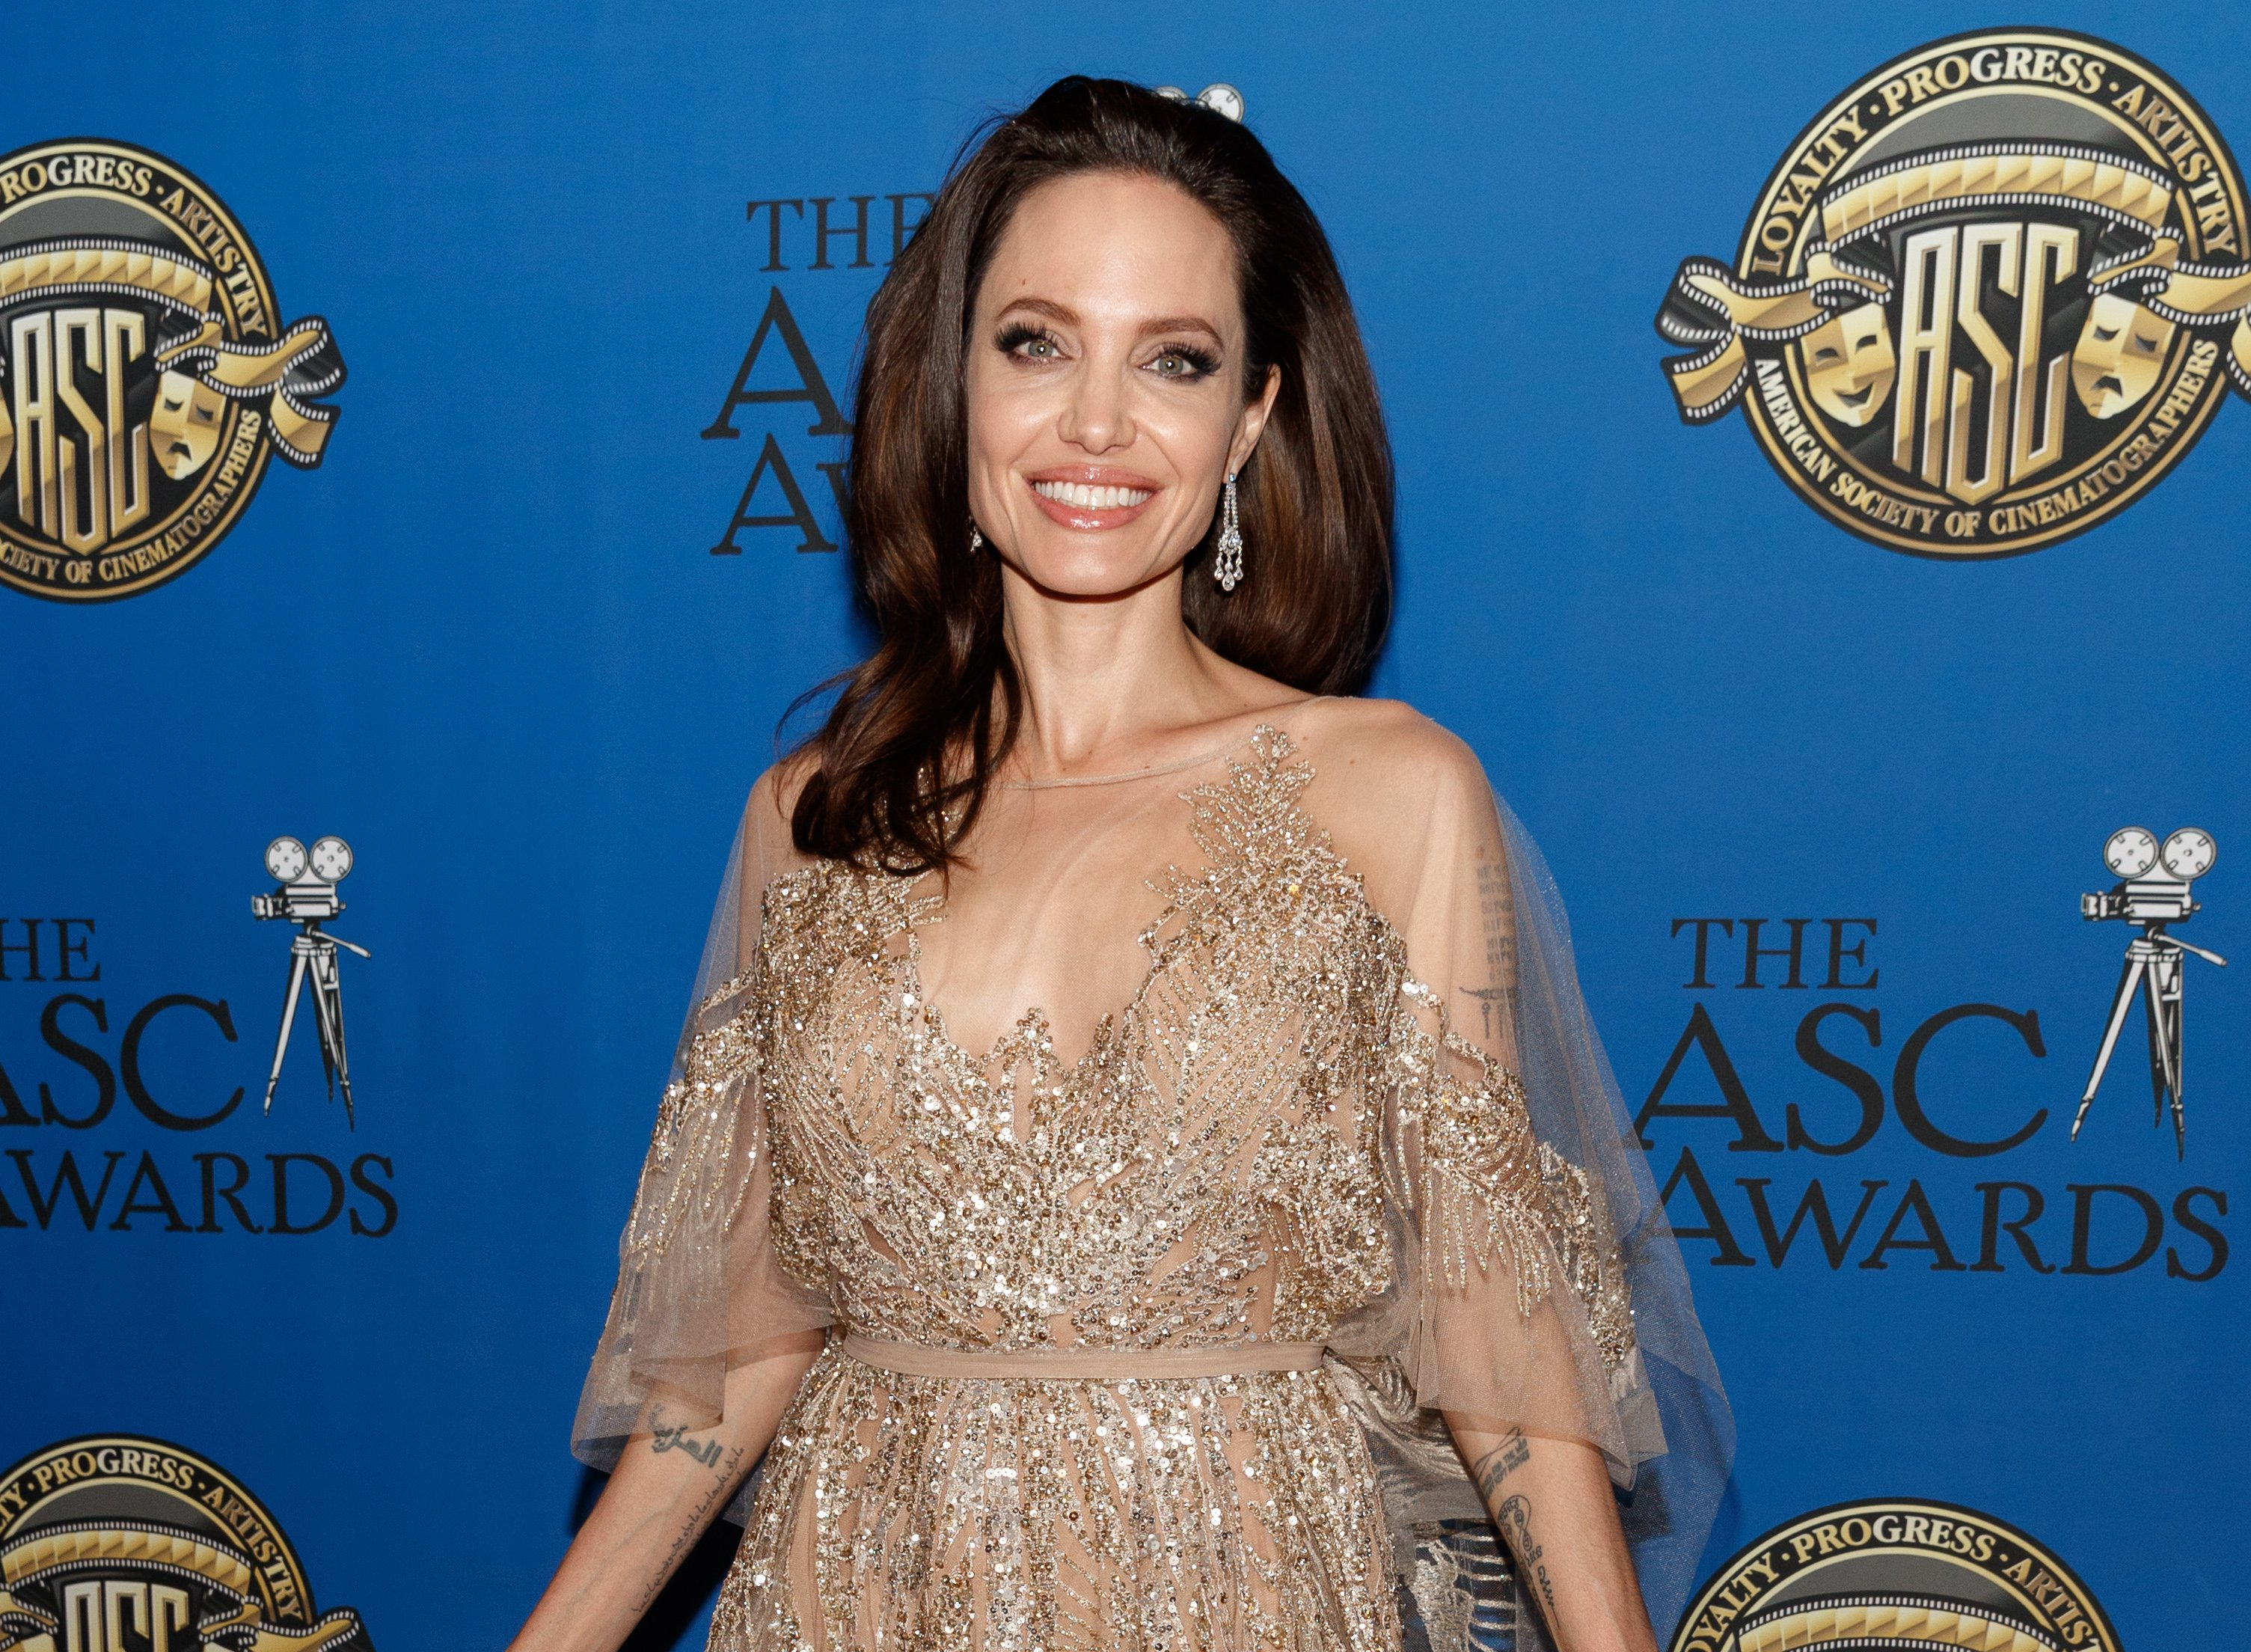 Angelina Jolie attends the 32nd Annual American Society Of Cinematographers Awards on February 17, 2018. | Photo: Getty Images